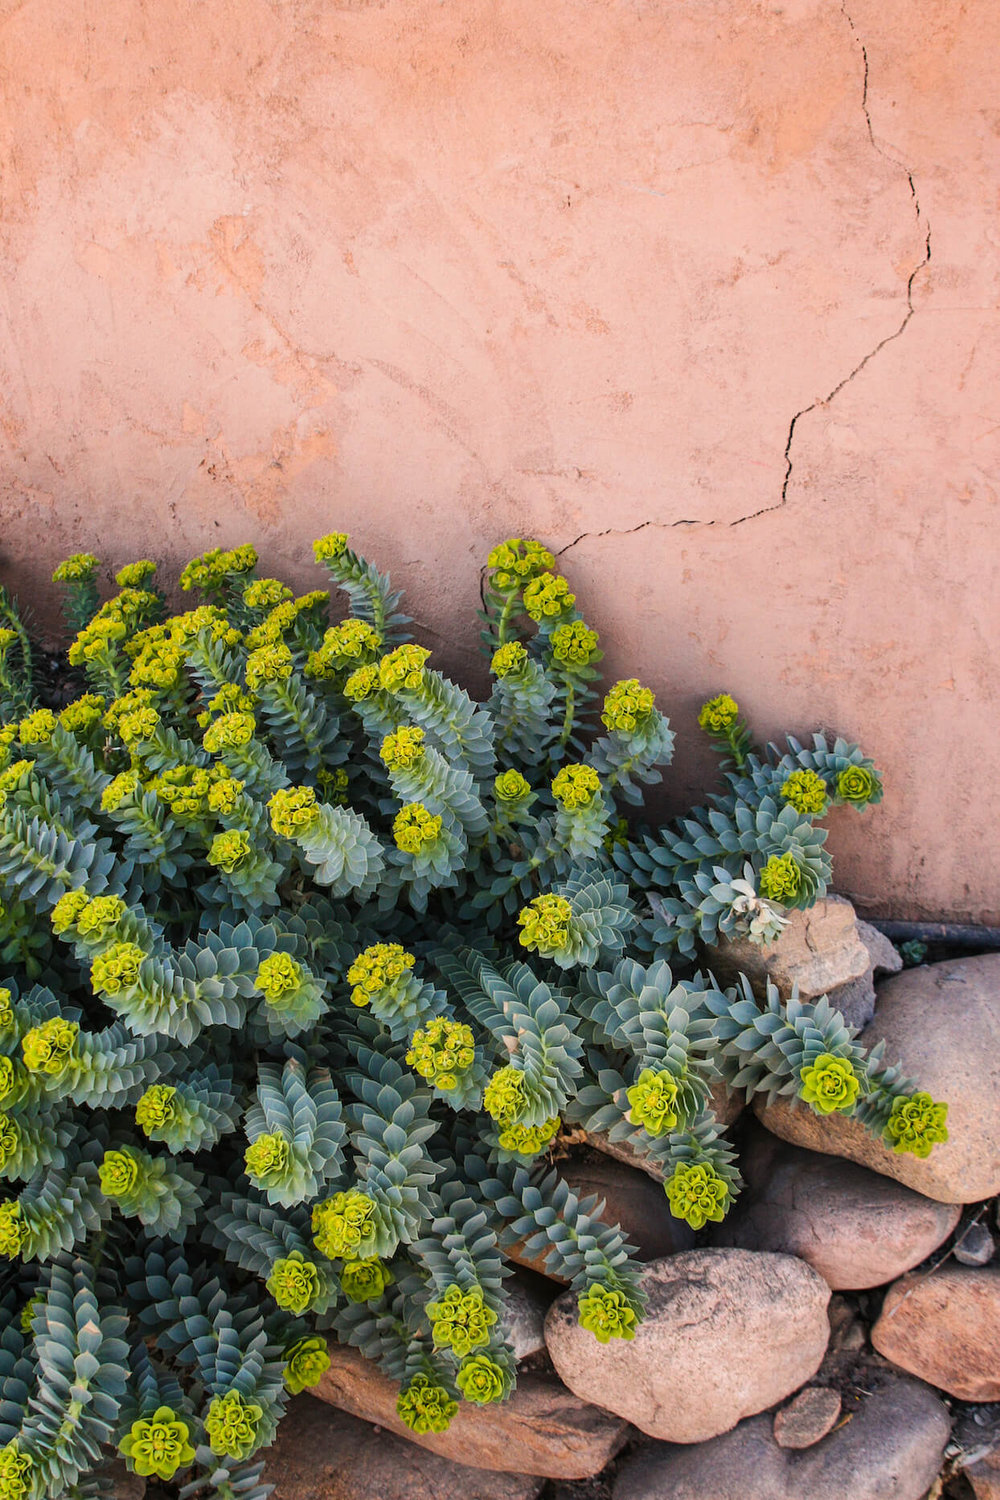 Euphorbia and Adobe